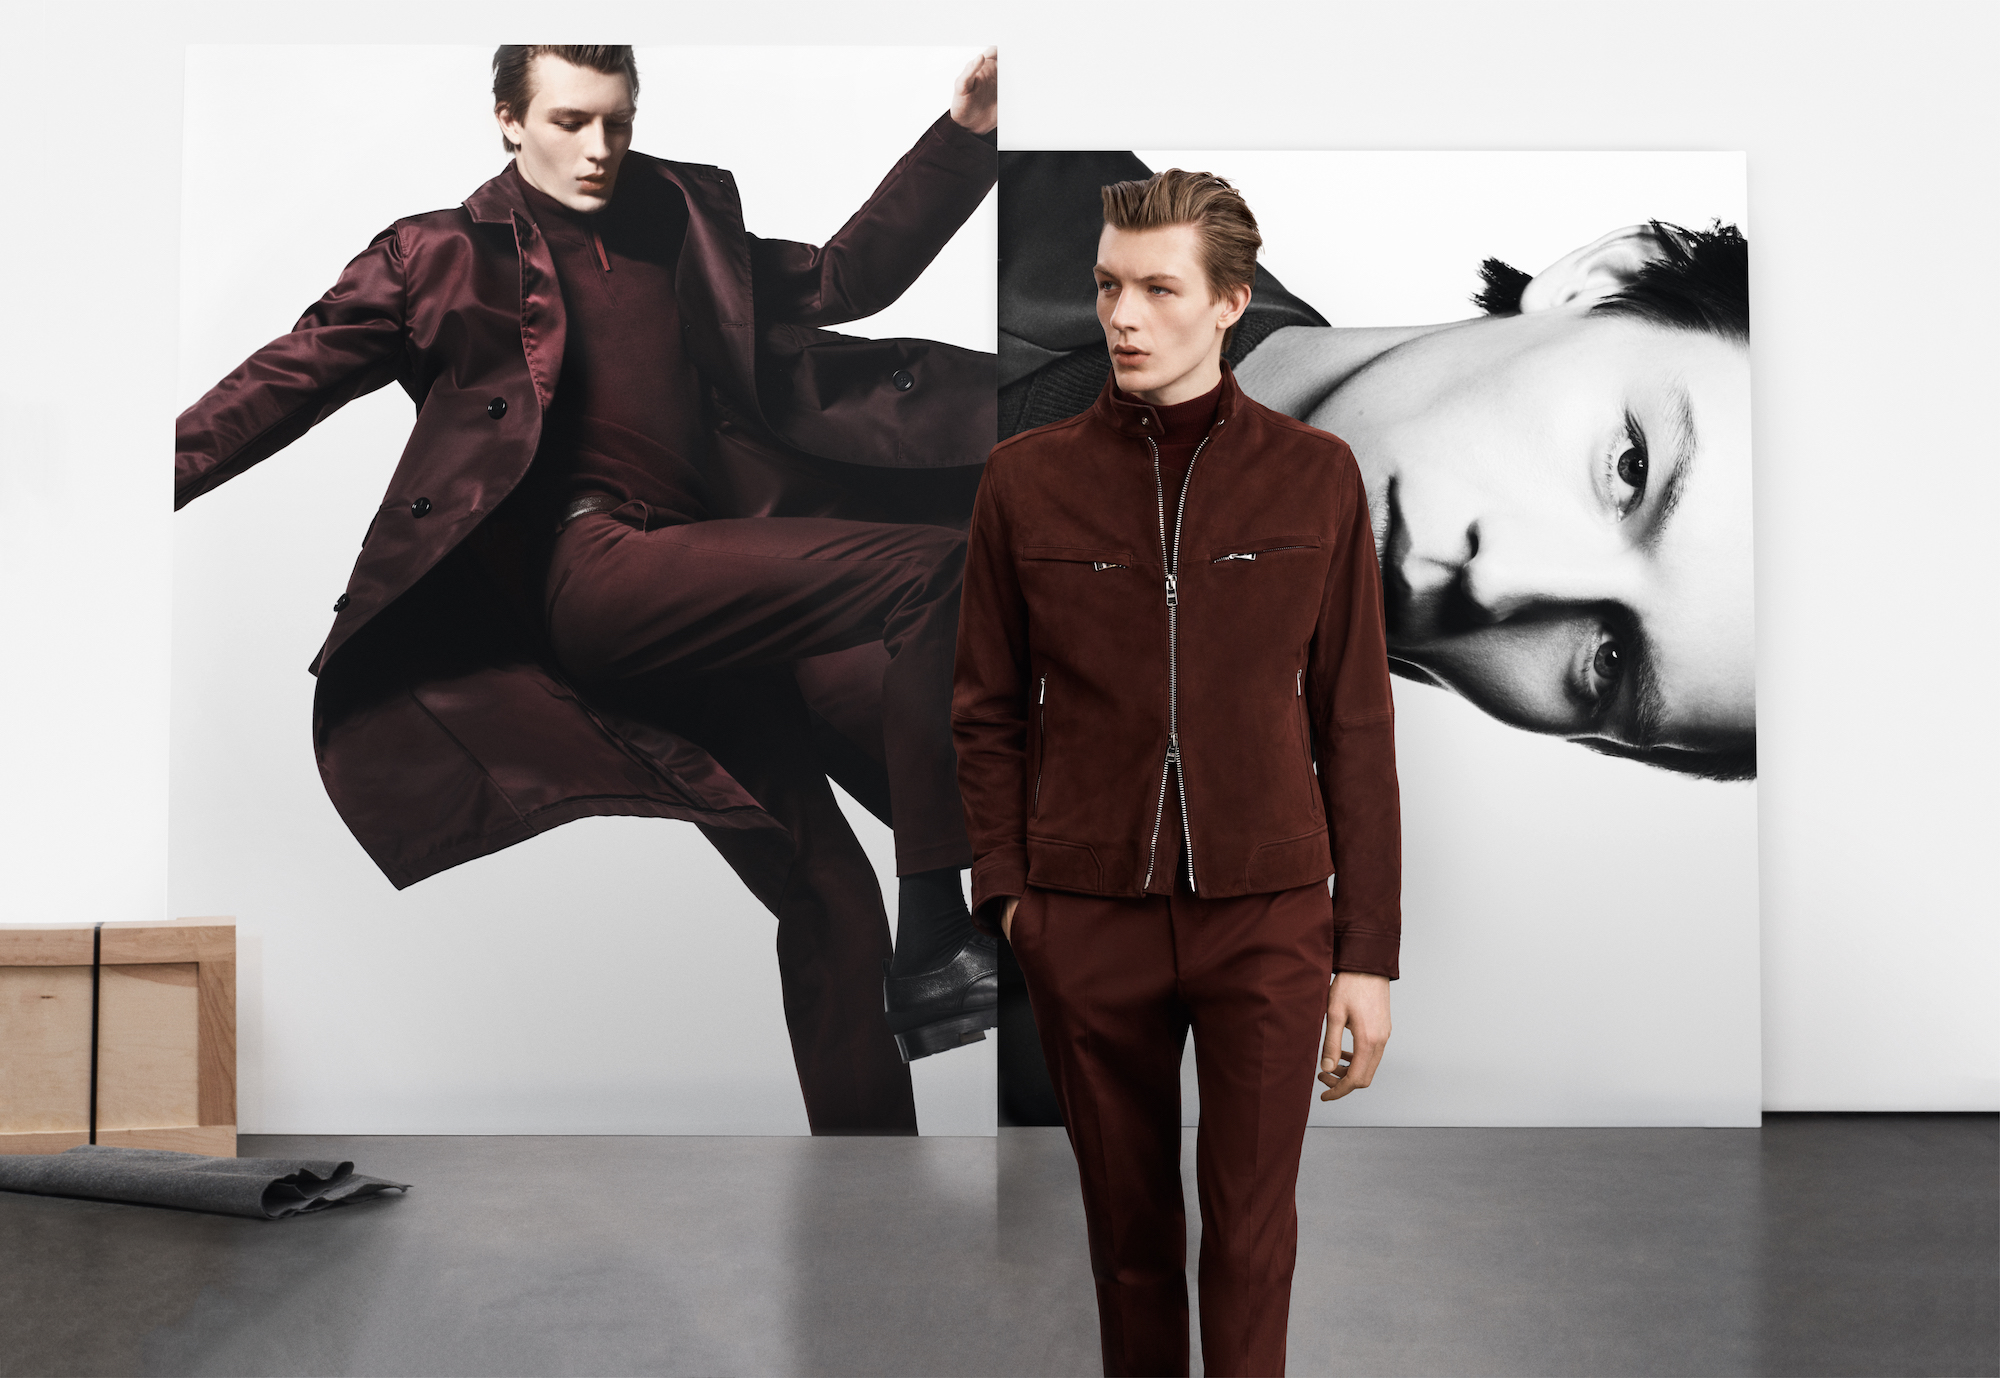 Top 10 Men's Fashion Ads of 2019